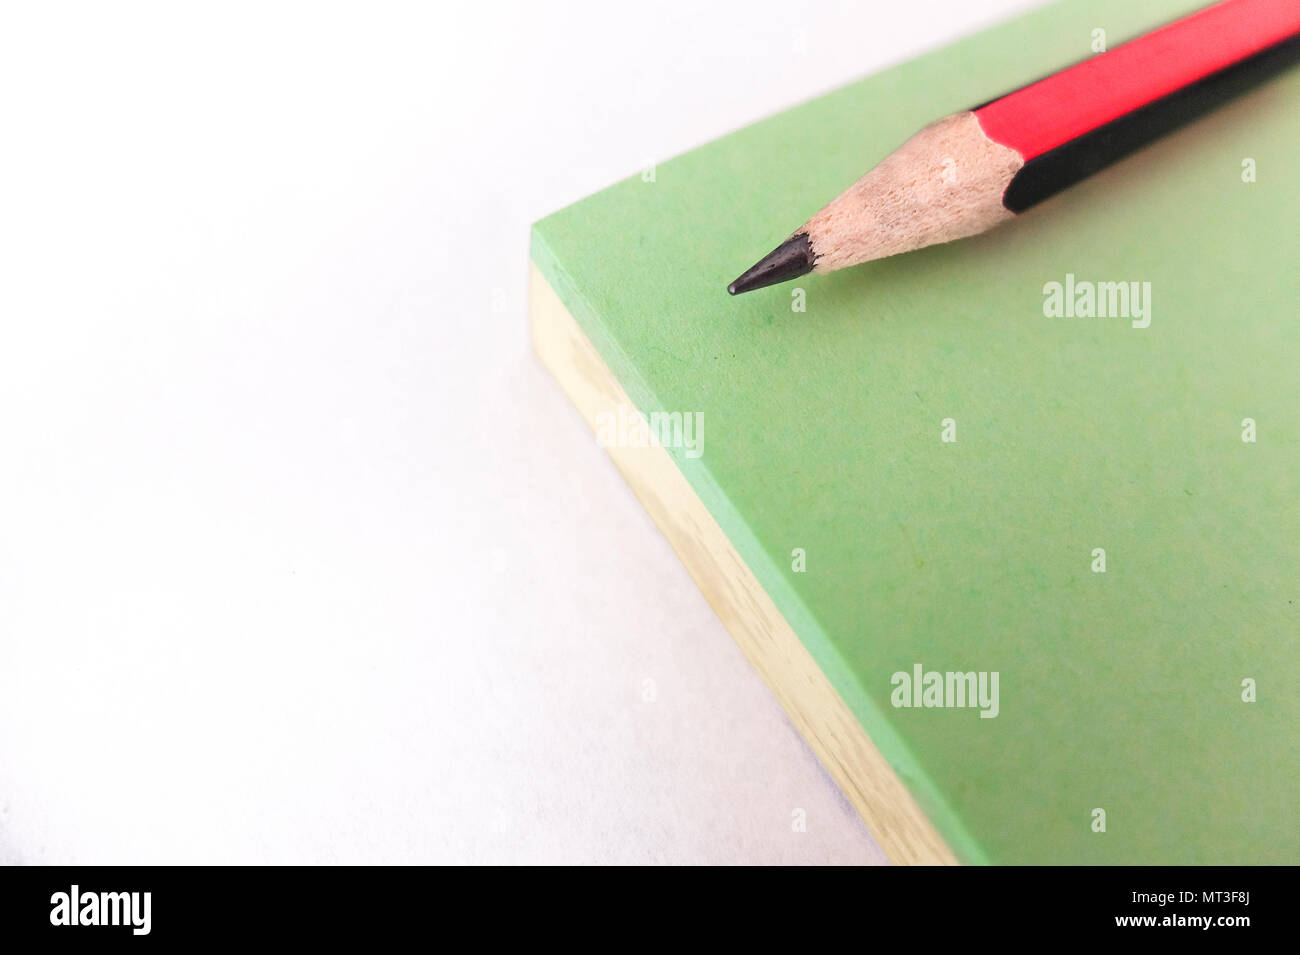 Small red and black pencil, sharp at both ends, on a green and yellow notepad - Stock Image